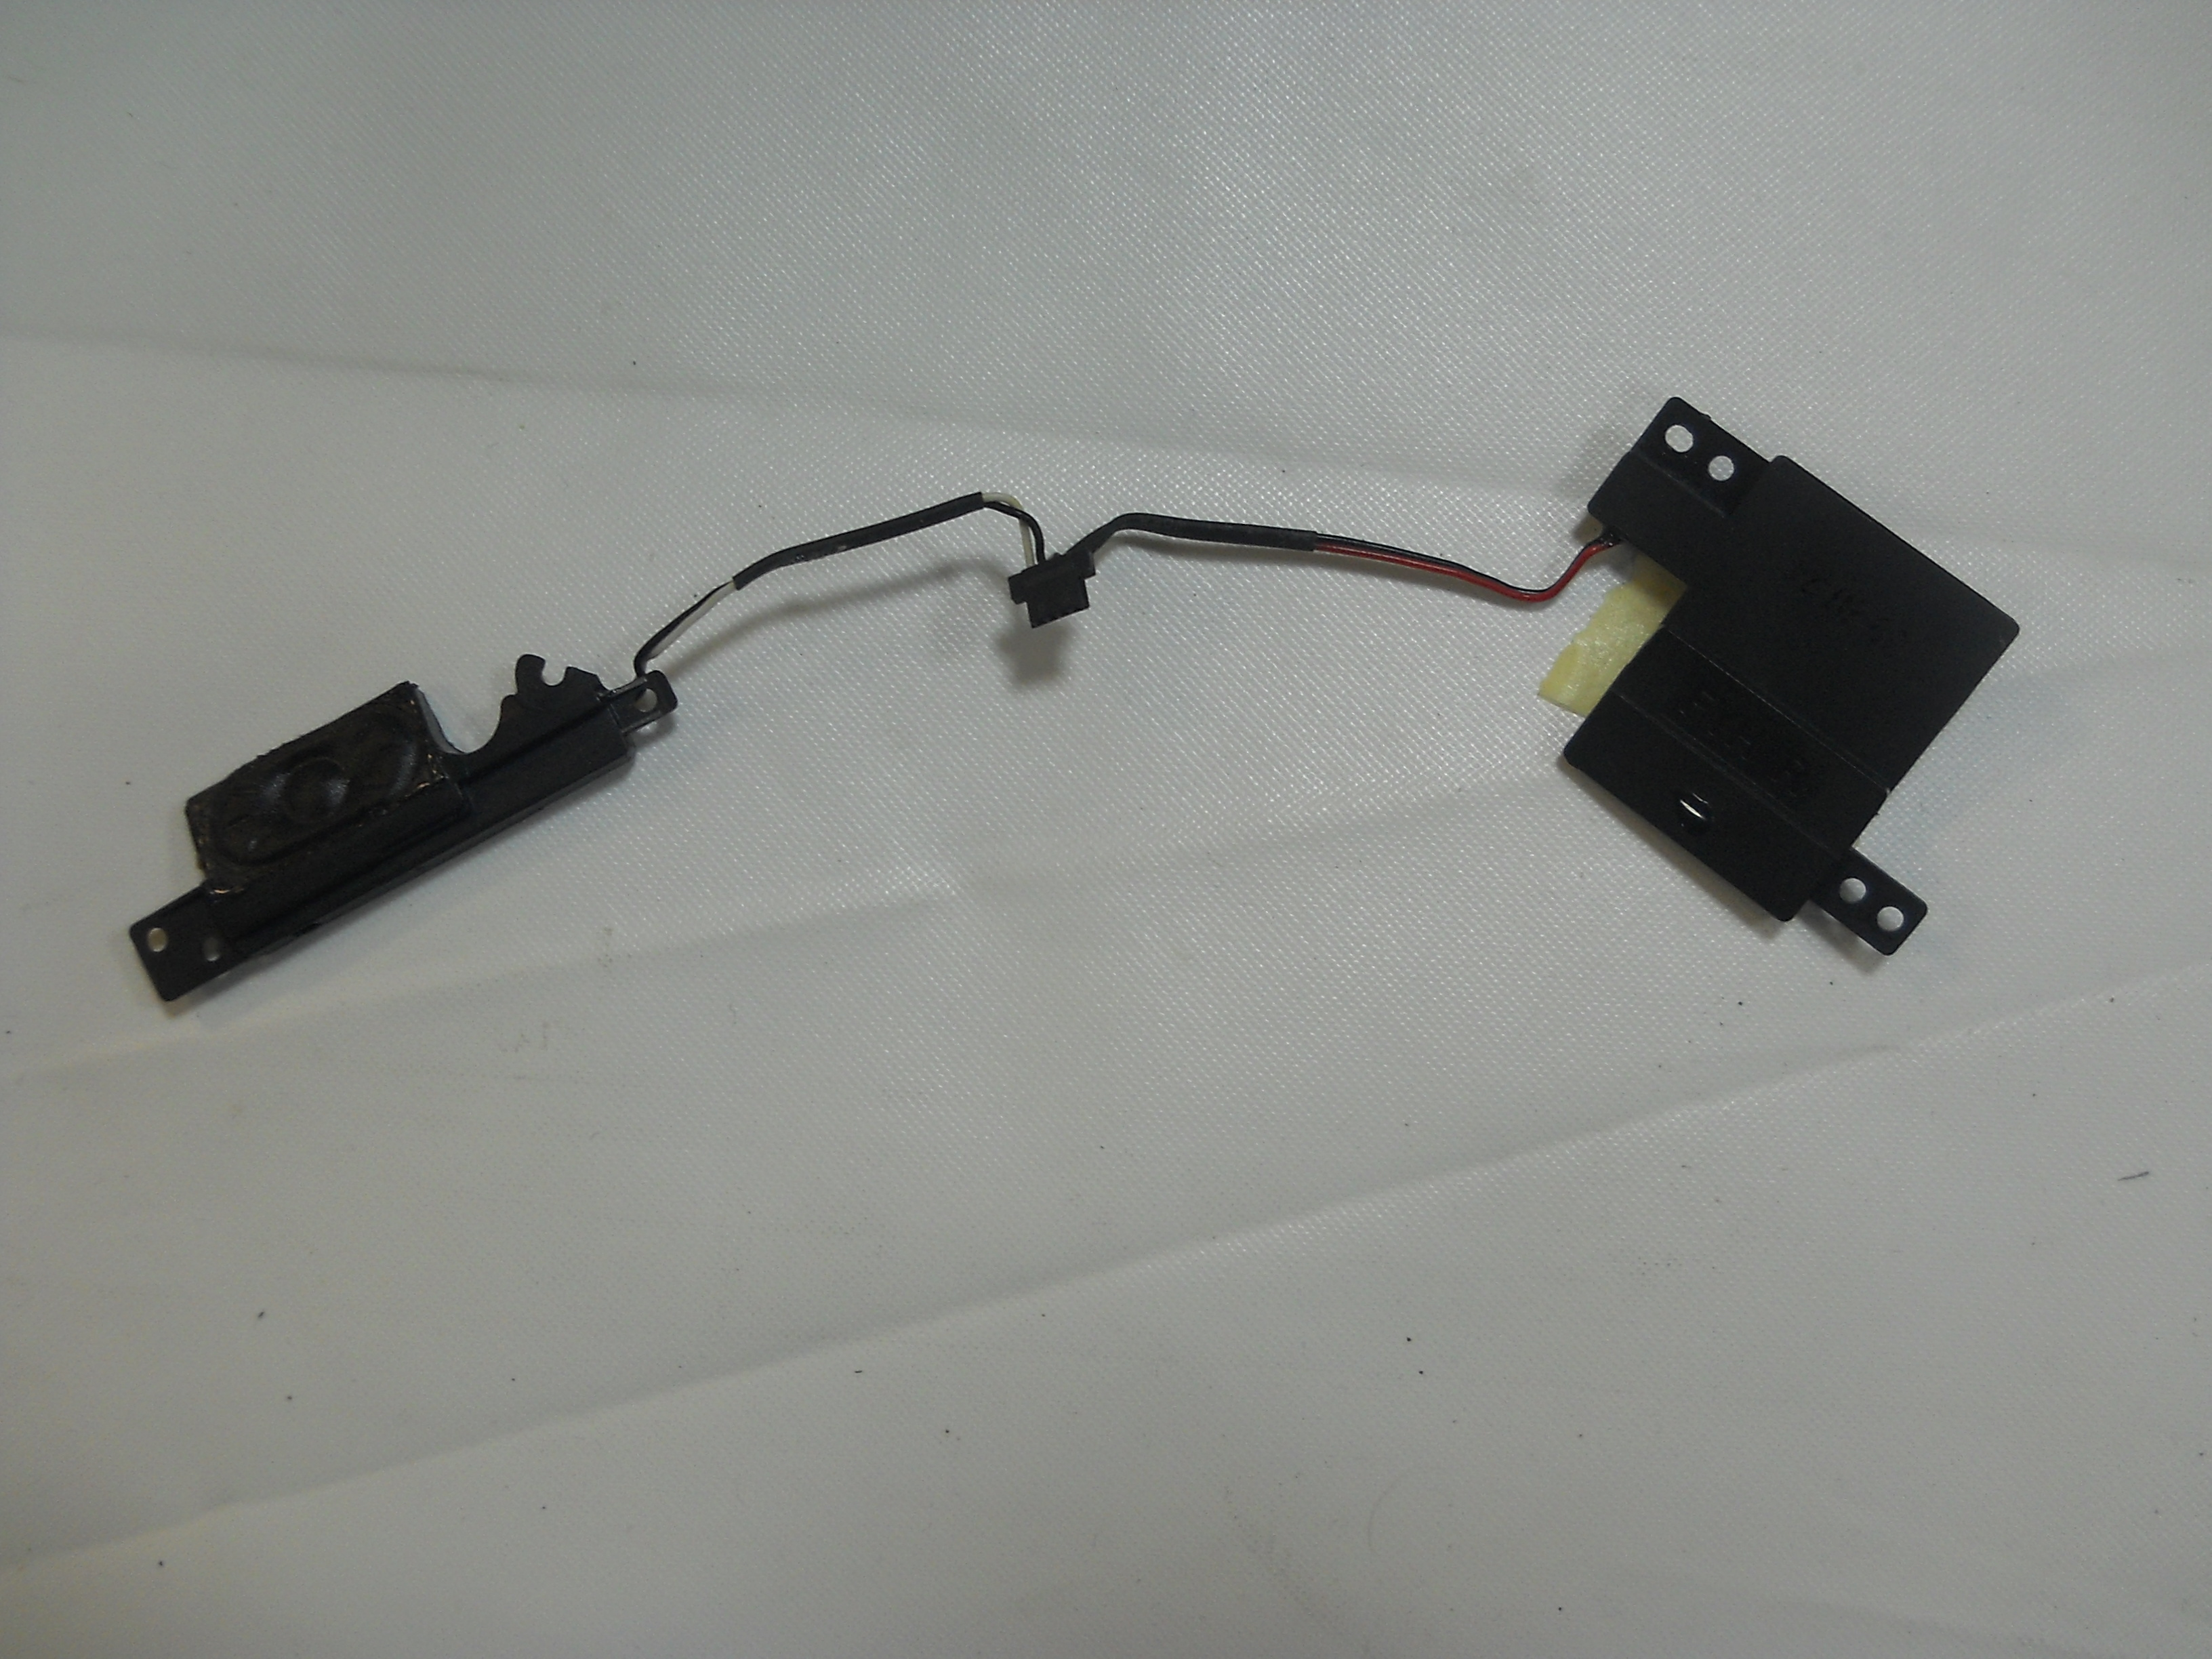 Reproduktory / Speakers pro Acer Aspire 1410-742G25n